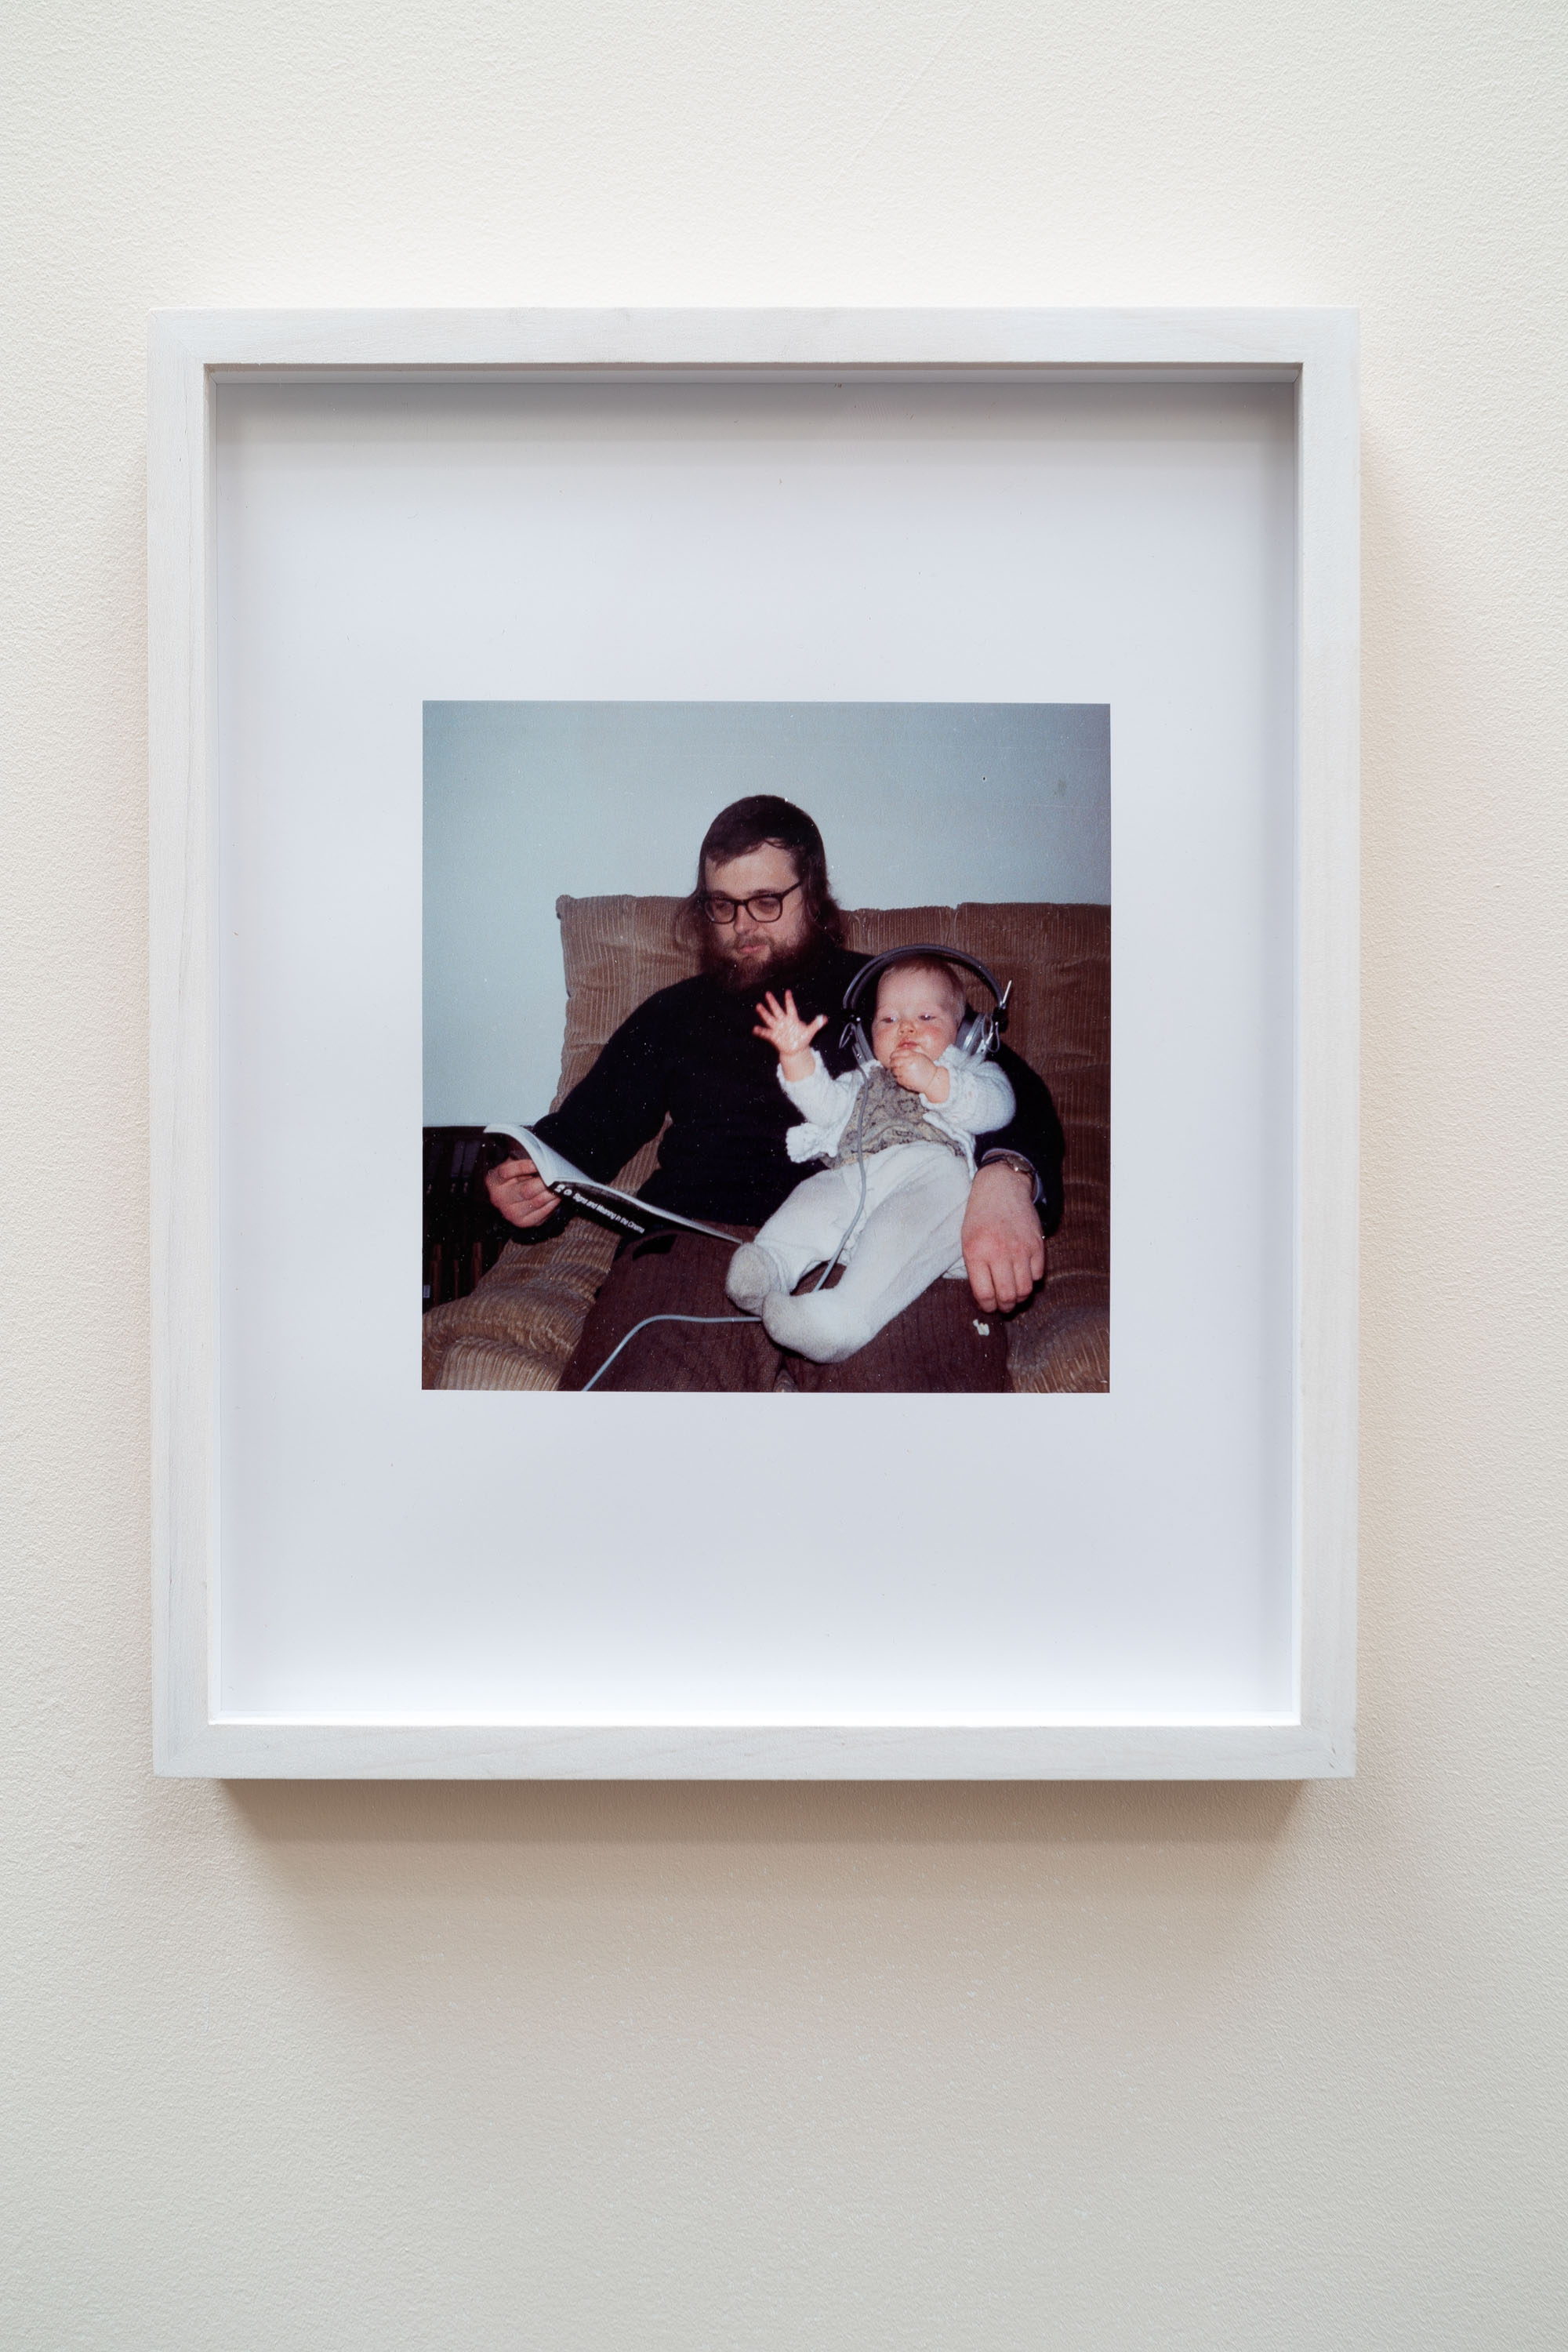 Counter Strategies, 1972, C-Type colour print, 21.7 x 26.5 x 3 cm, 8 1/2 x 10 3/8 x 1 1/8 in framed